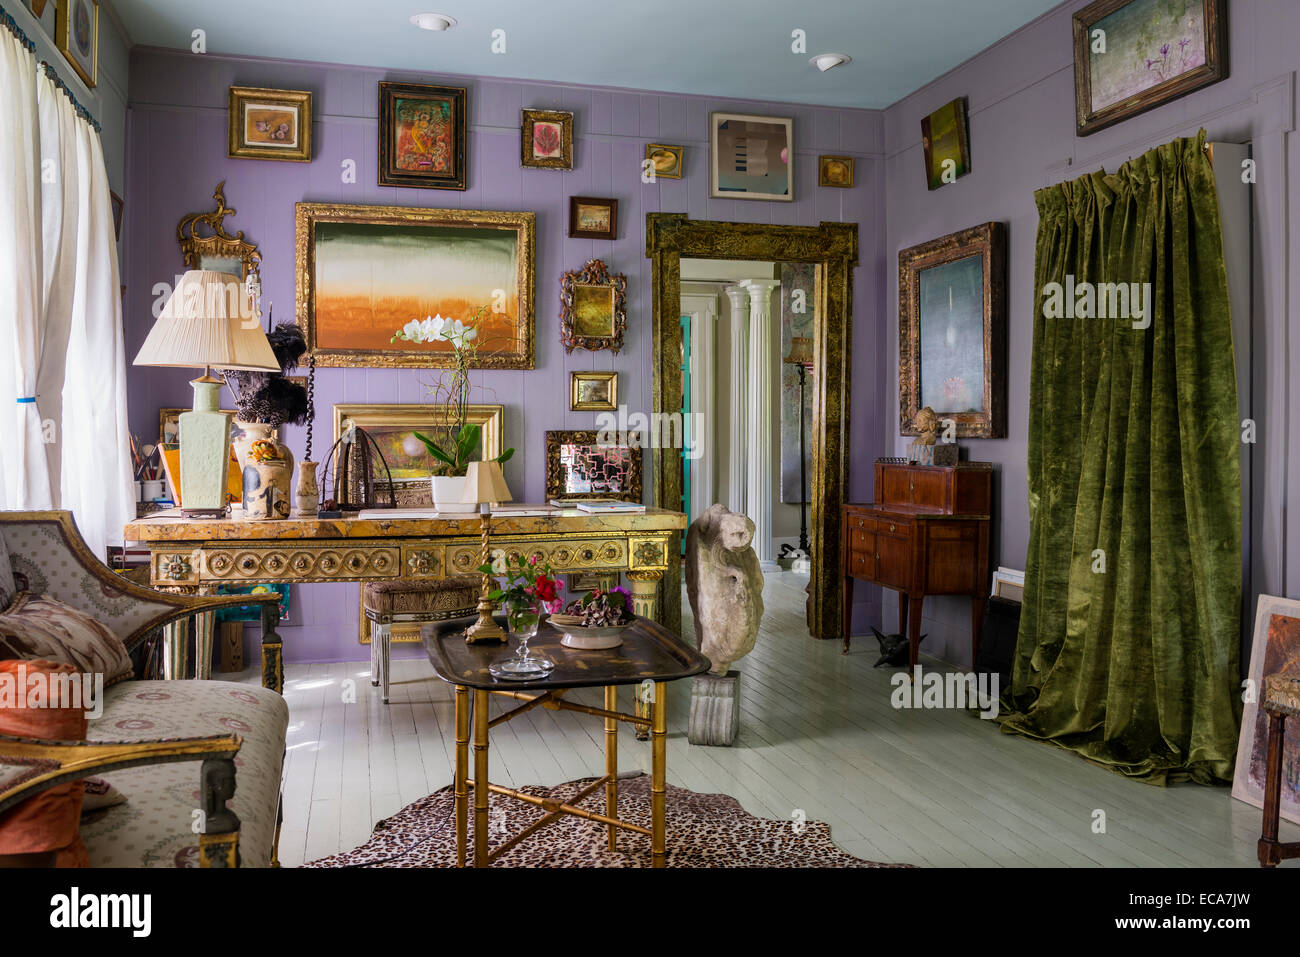 18th century gilded Italian table with marble top in living room with Salle Werner Vaughn artwork adorning the walls - Stock Image